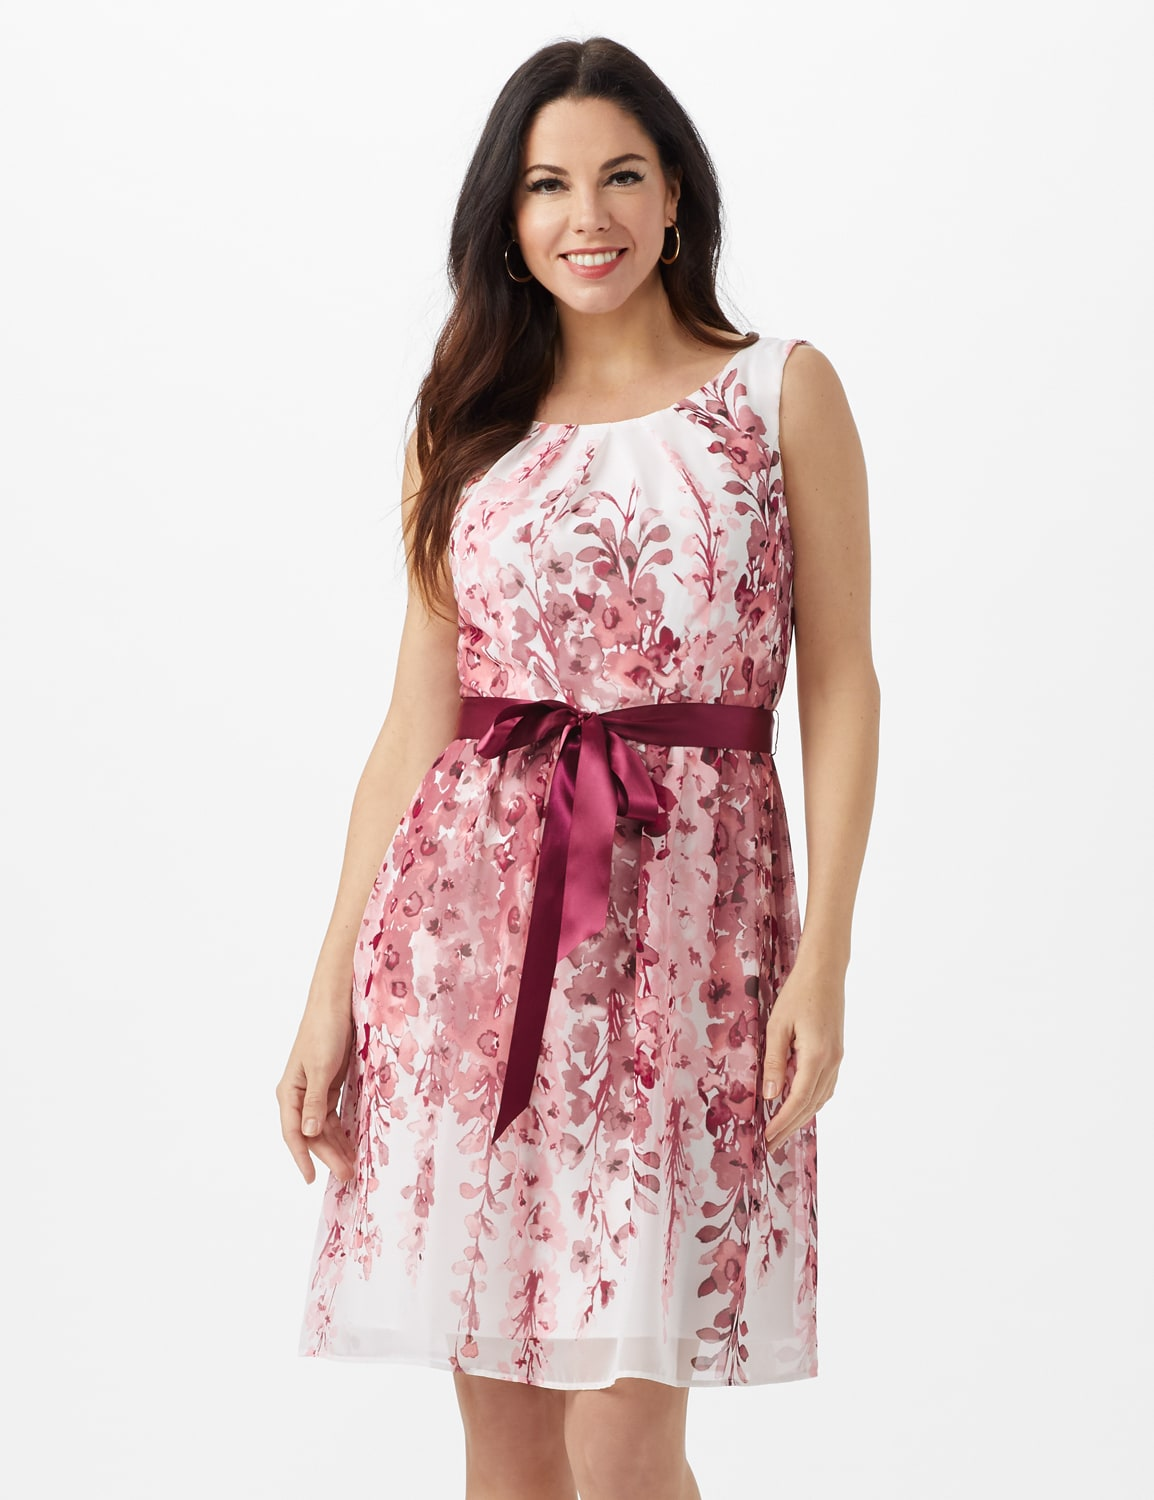 Double Vine Floral Boarder Dress with Satin Ribbon Belt - Dusty Rose - Front